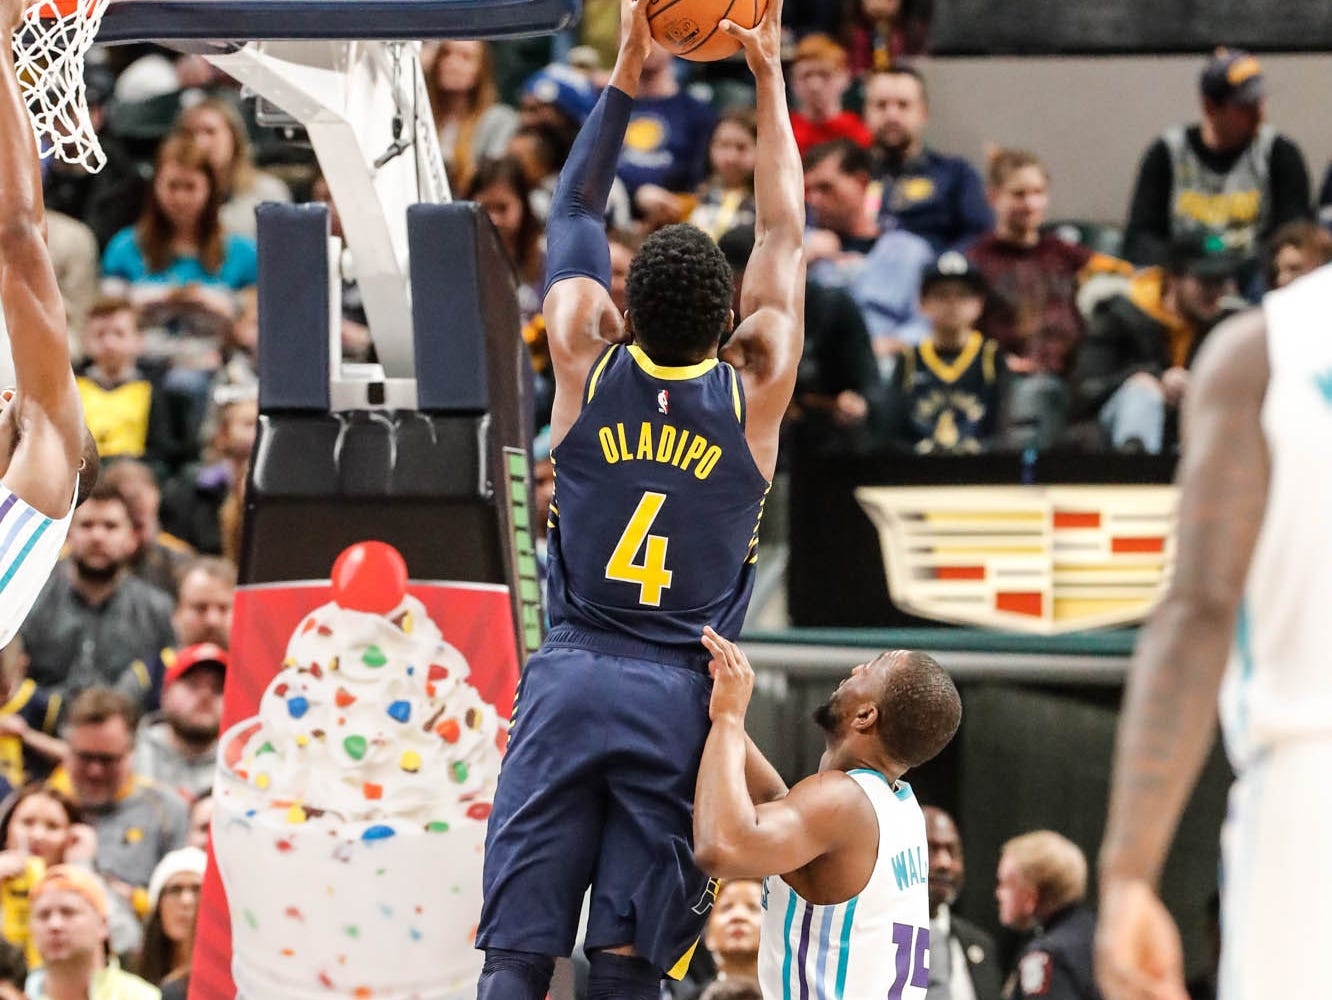 Indiana Pacers guard Victor Oladipo (4), grabs a rebound from Charlotte Hornets guard Kemba Walker (15), during a game between the Pacers and Hornets at Bankers Life Fieldhouse on Sunday, Jan. 20, 2019.